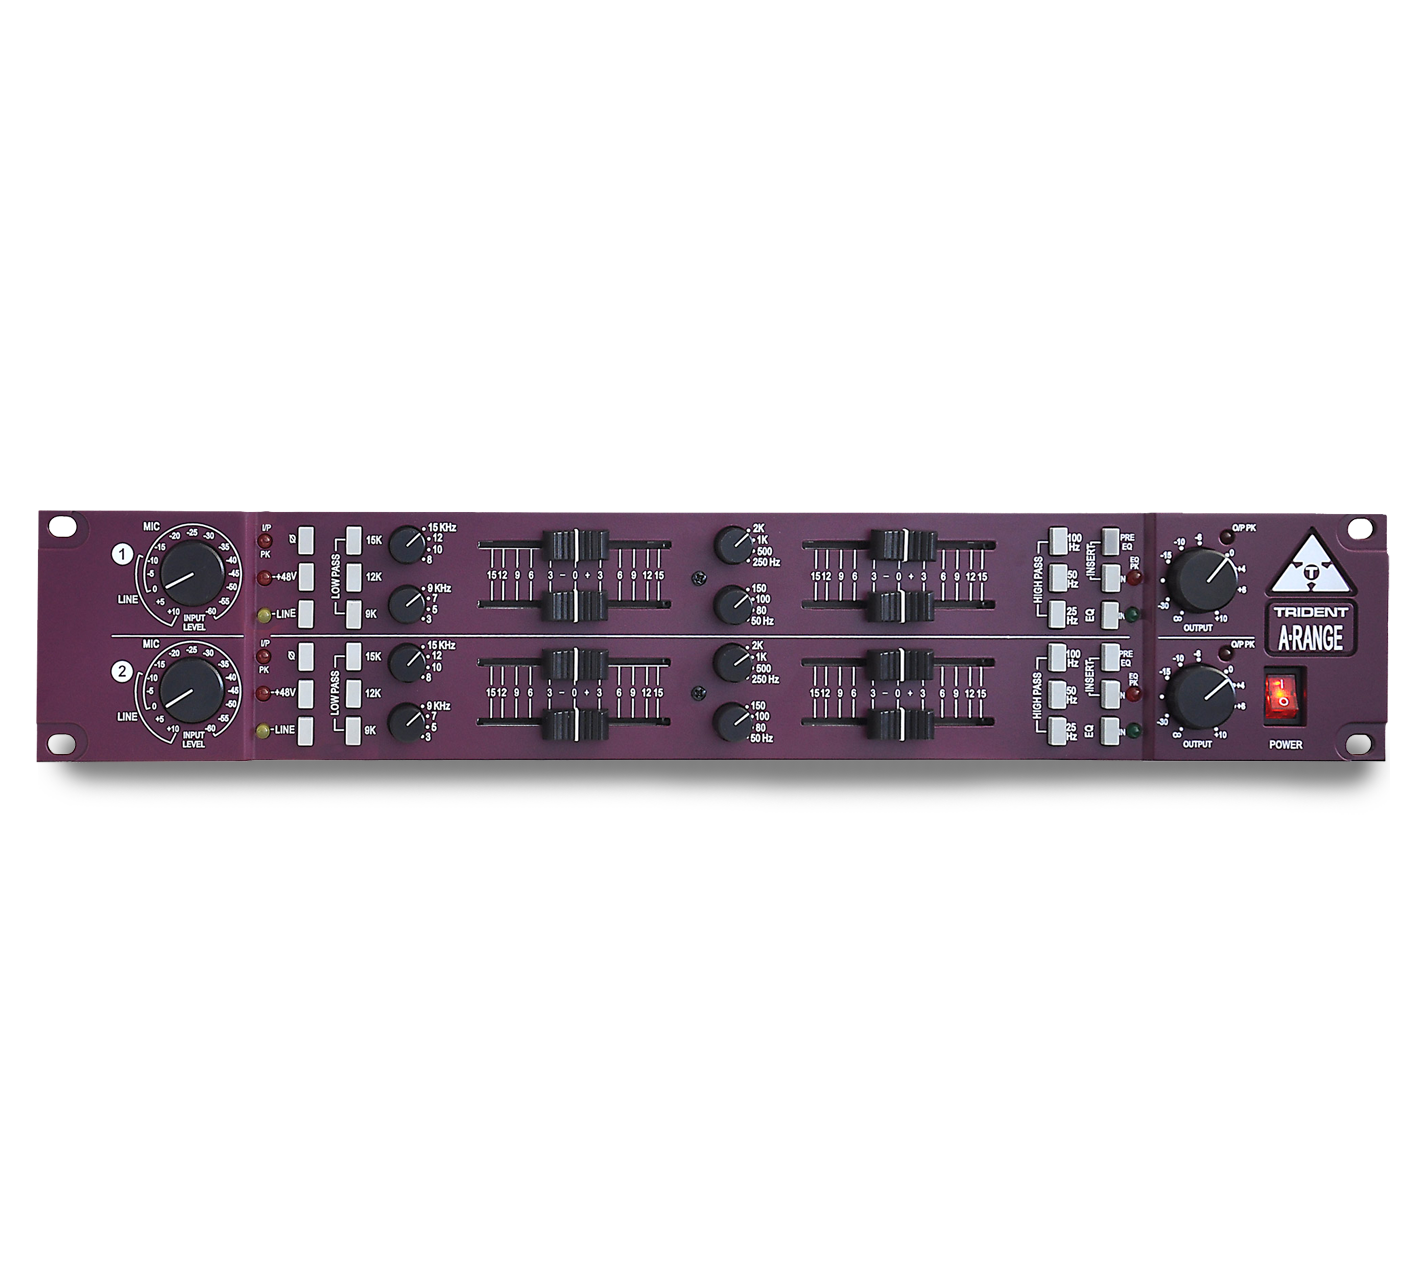 A-Range Dual Channel Strip